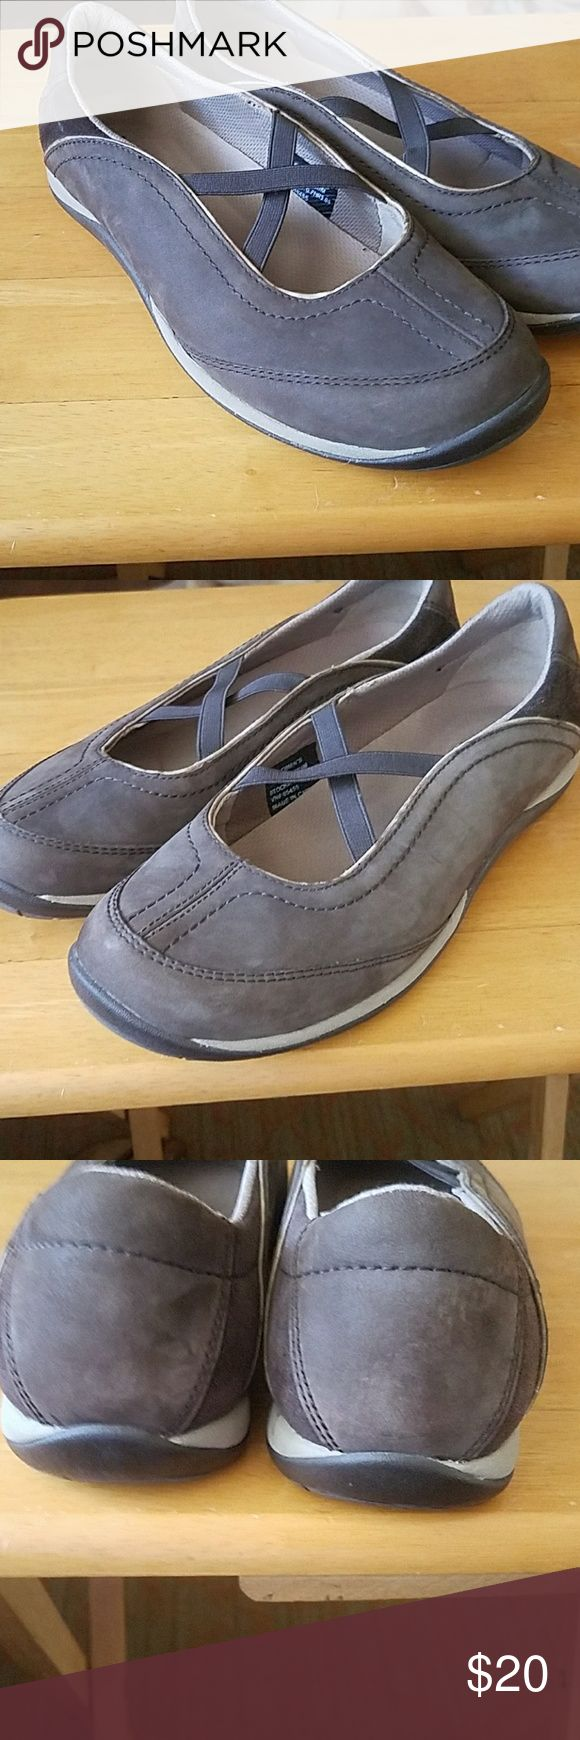 LL  Bean ladies slip on's size 7 Ladies LL Bean casual slip on's in size 7. These were only worn 1 time excellent condition. All leather and suede. Brown and tan in color. LL Bean  Shoes Flats & Loafers